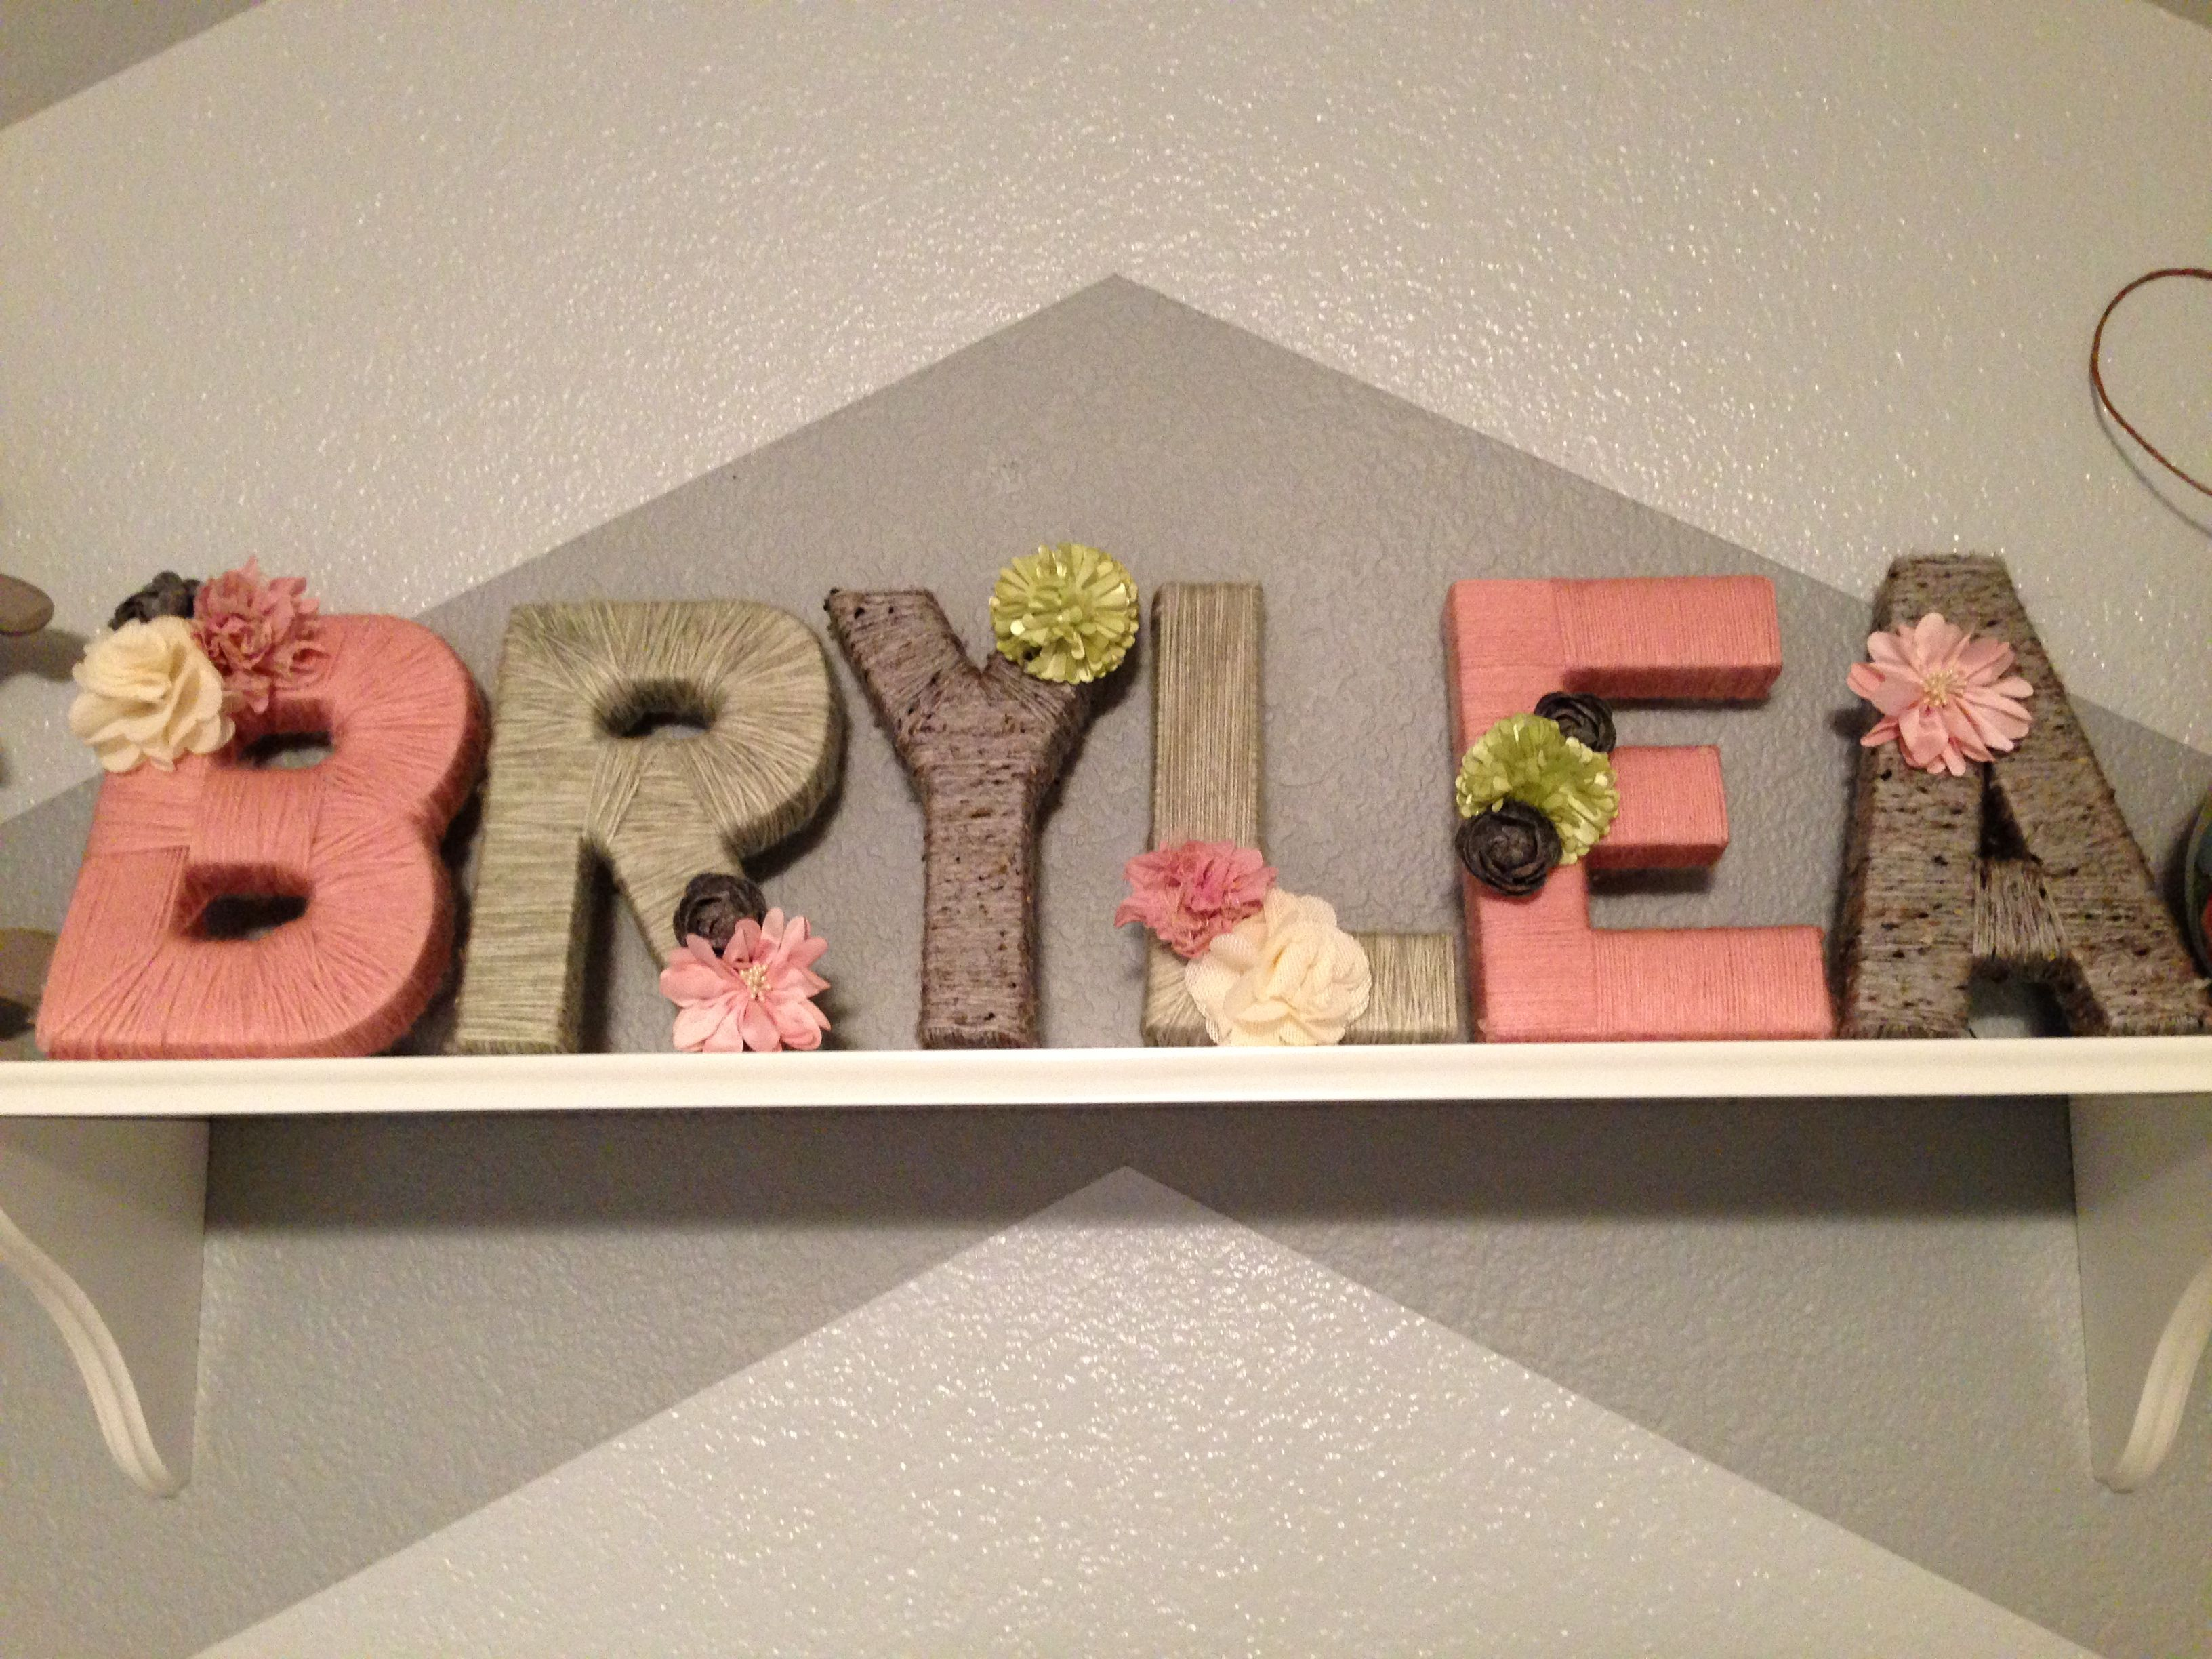 covering cardboard letters with yarn Yarn art craft paper crafts 21 diy cardboard letters they have been given a neat finishing by covering with tissue paper and painting with a white emulsion.